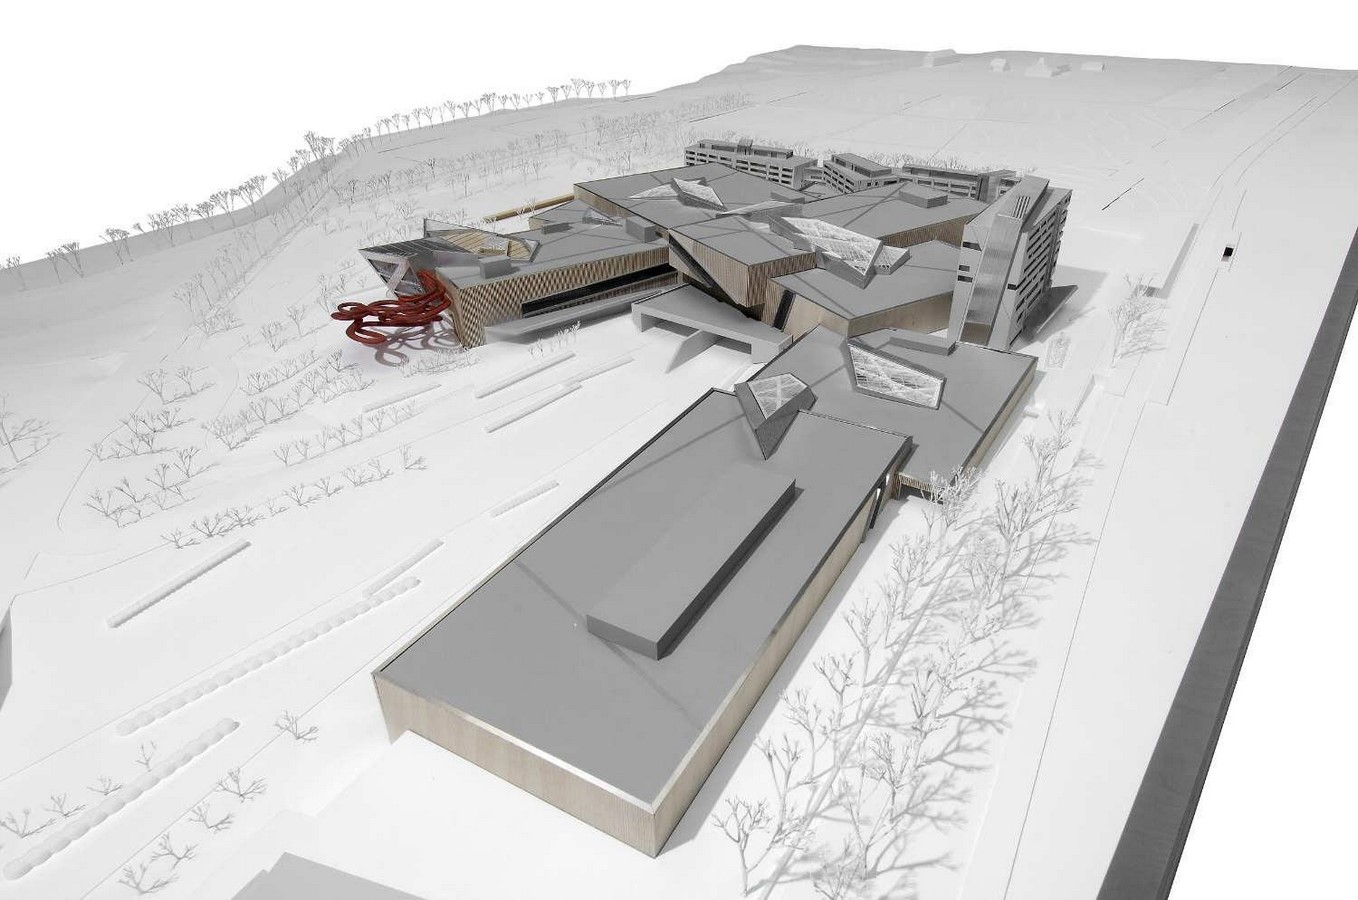 Westside Shopping and Leisure Centre by Daniel Libeskind: Unification of commerce, culture and leisure - Sheet12